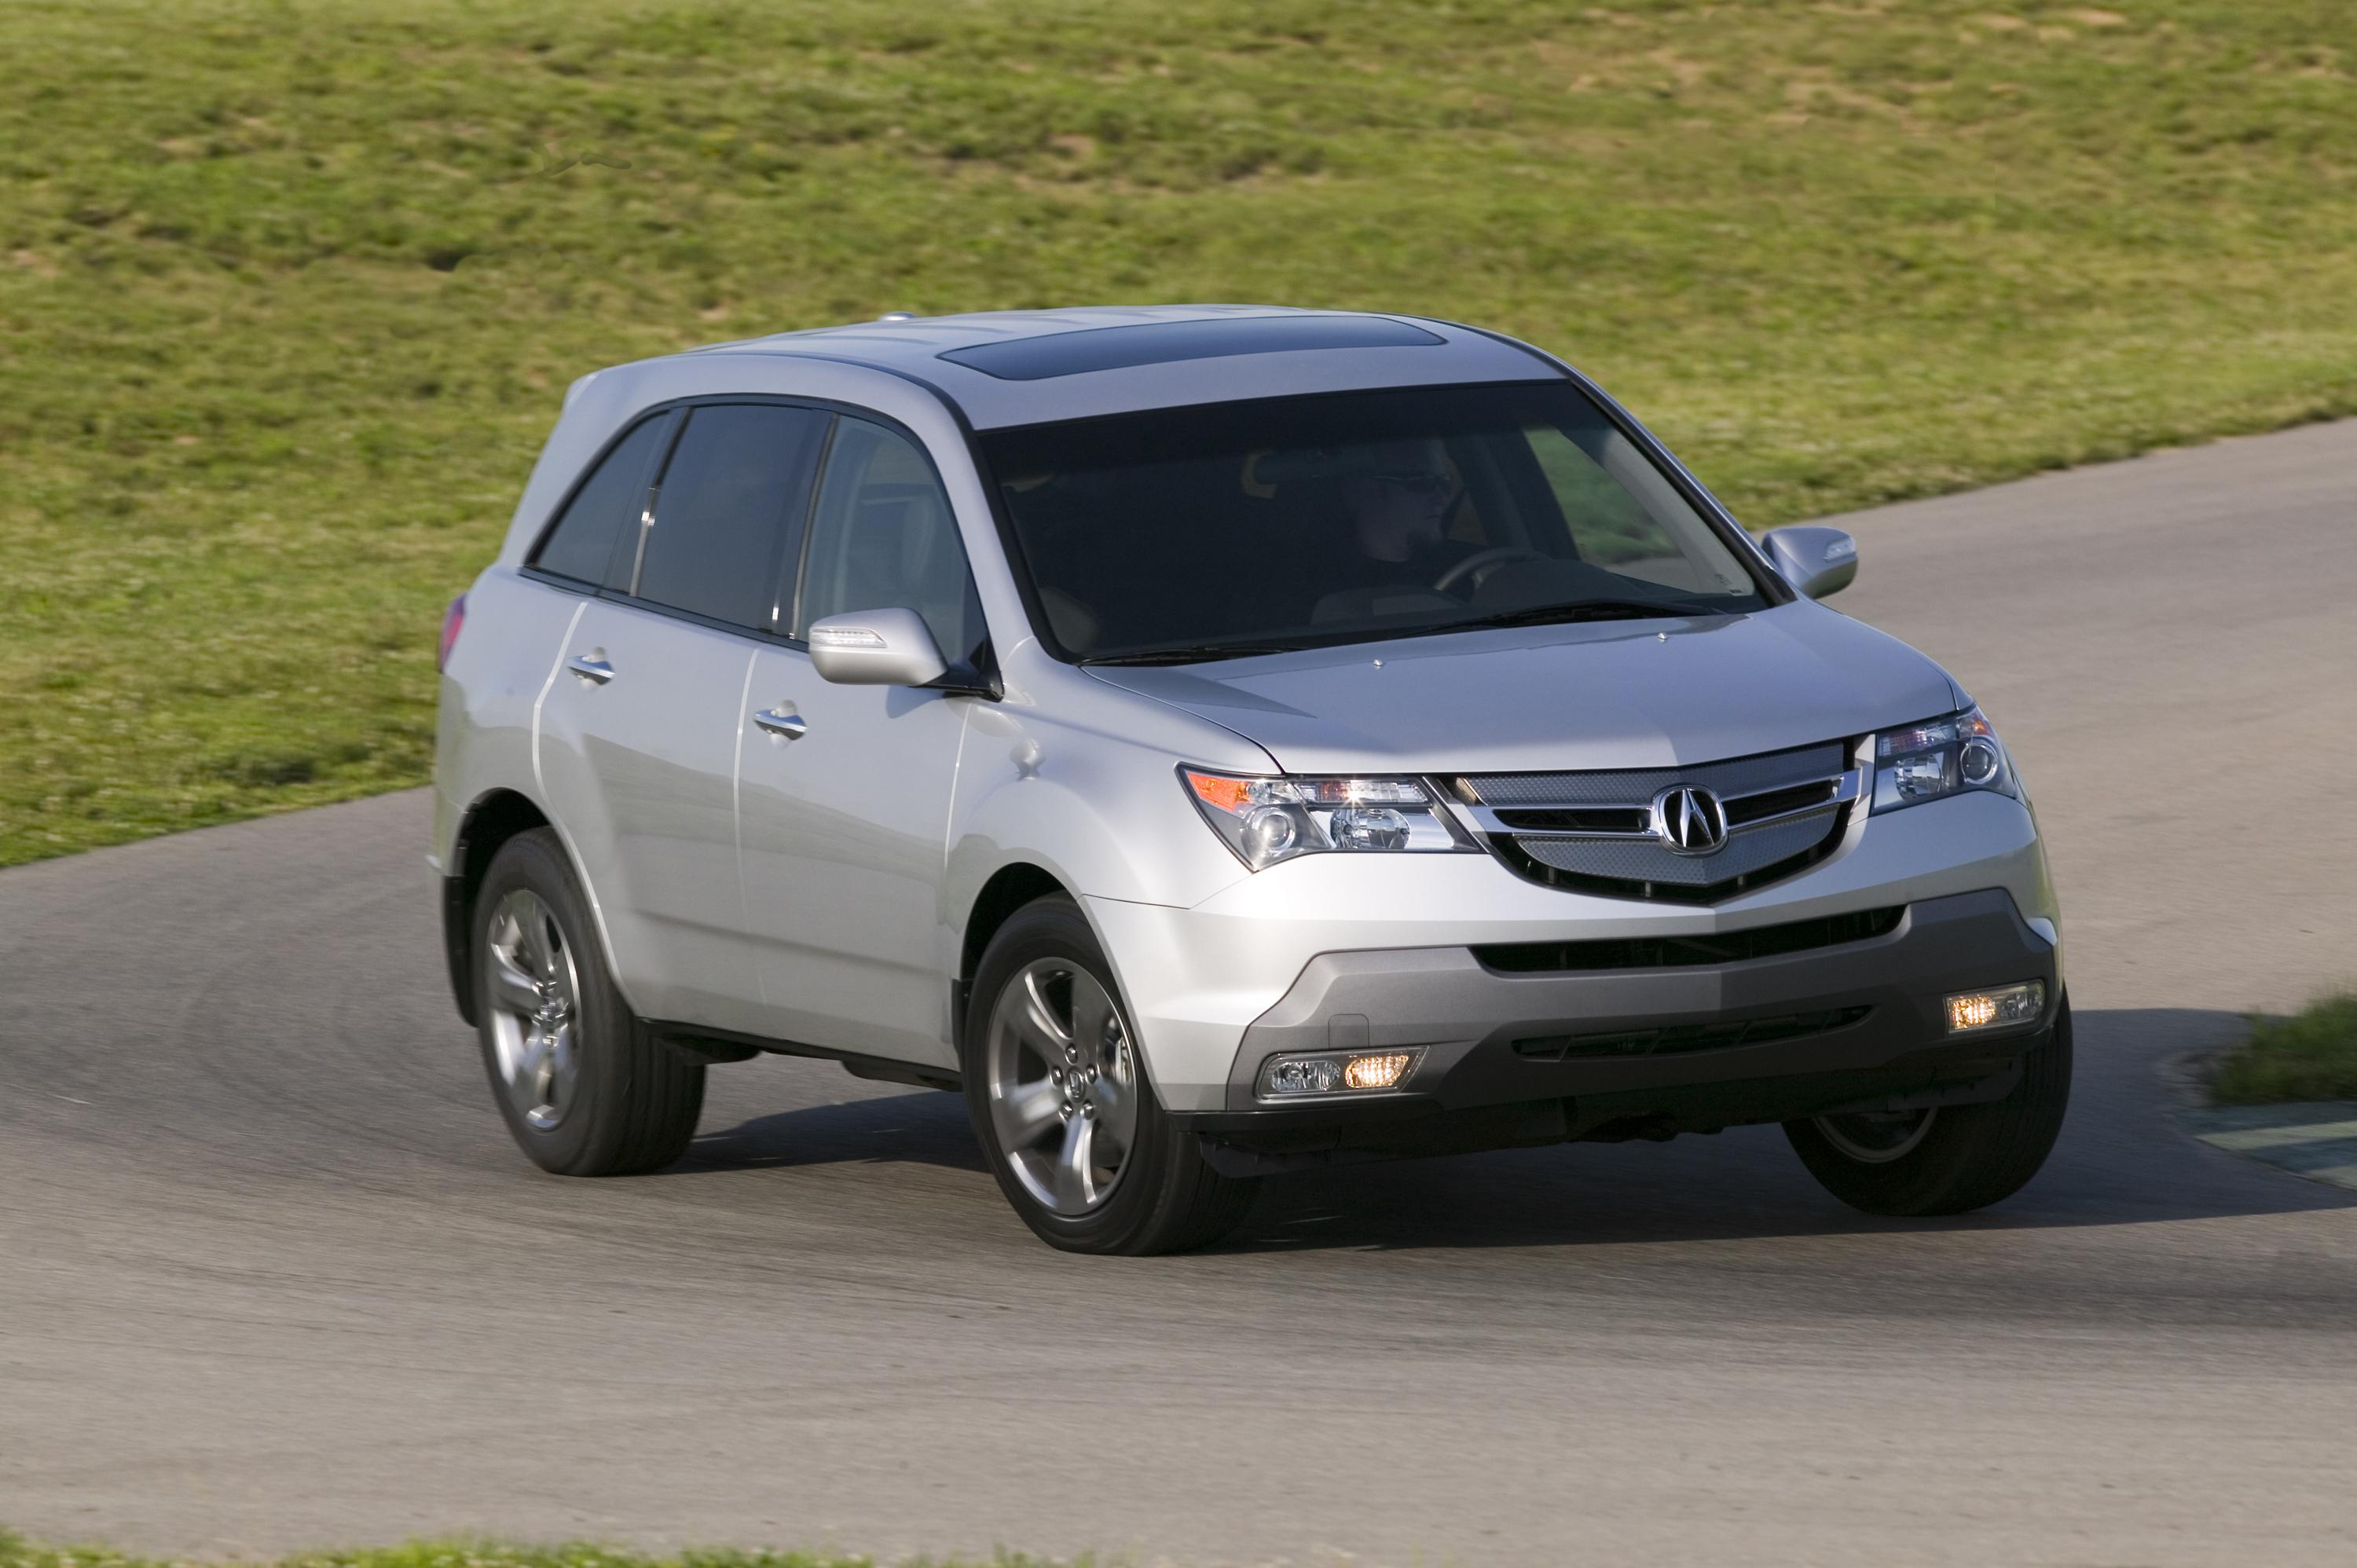 tech car current cost finders vehicles vehicle w georgia awd acura sh e mdx inventory